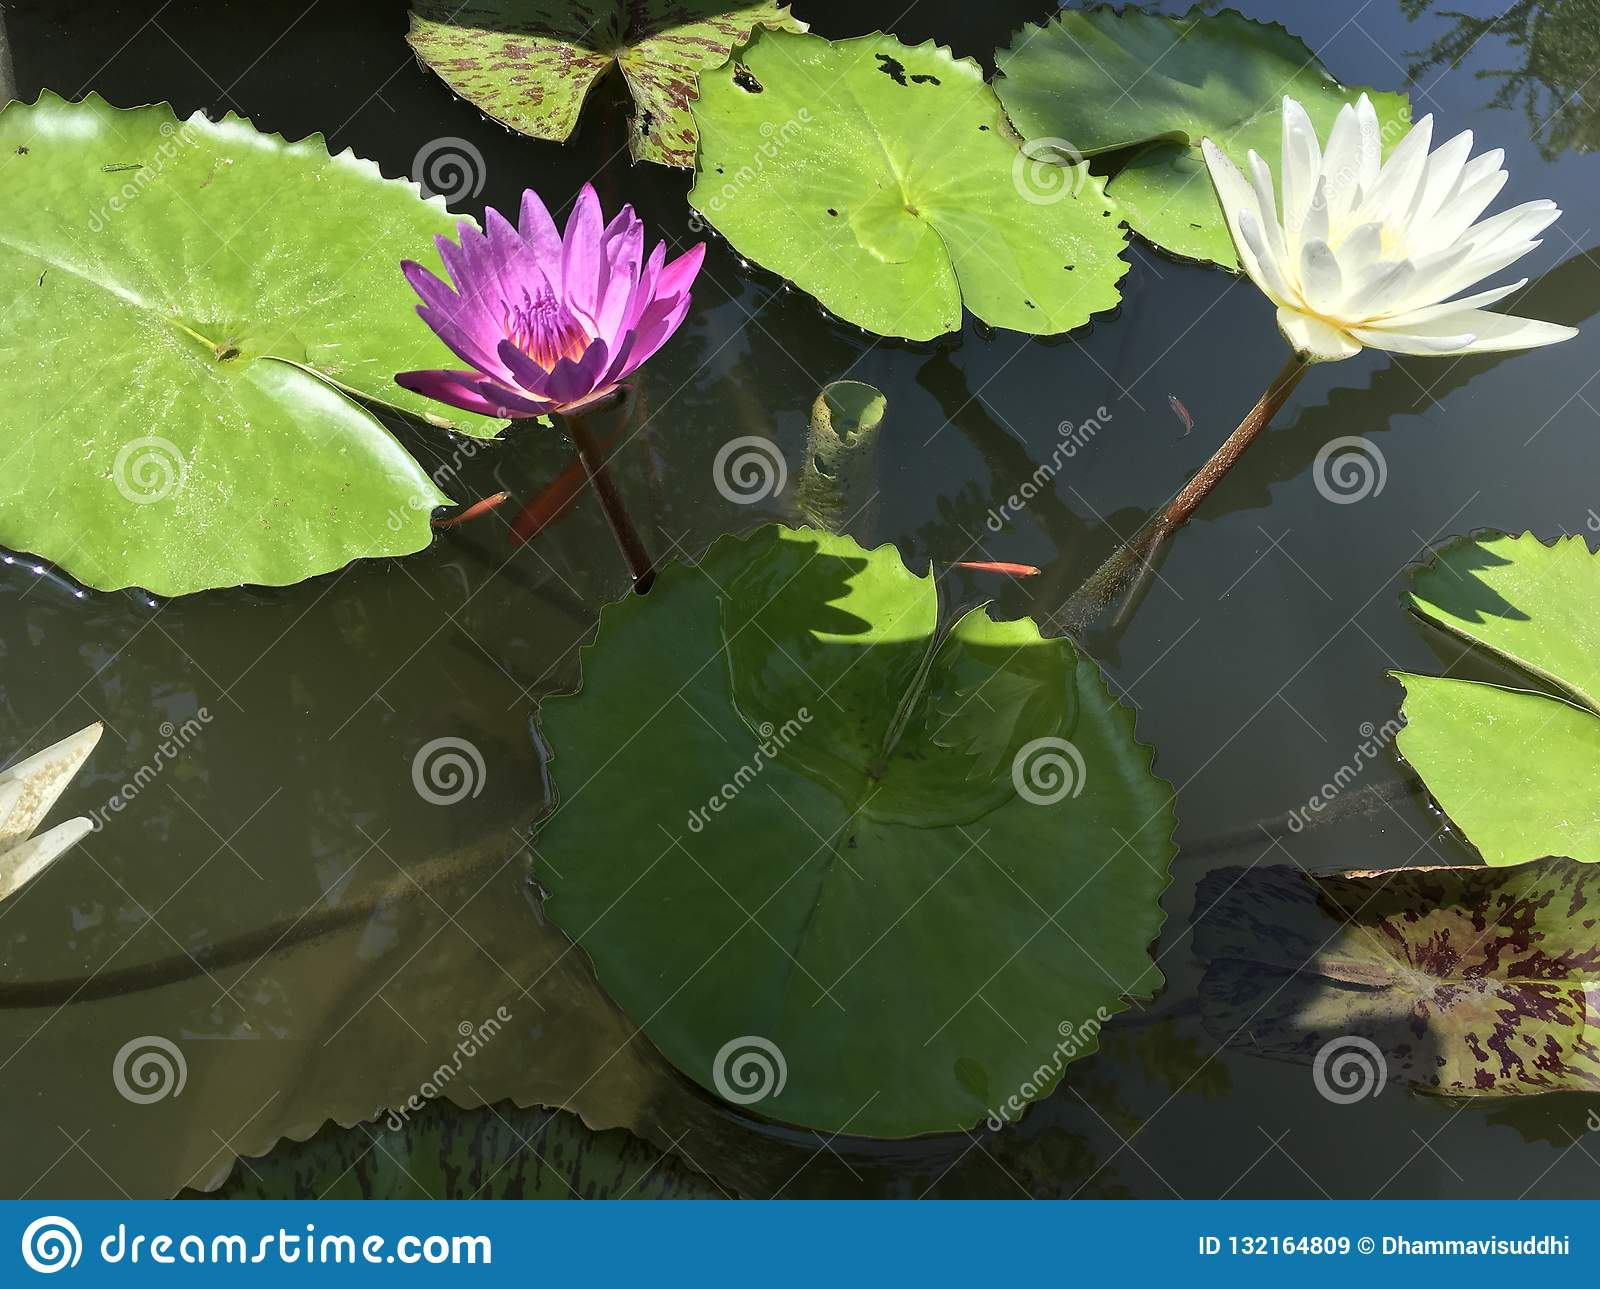 Tropical purple and white water lilies in a pond with tiny orange fishes